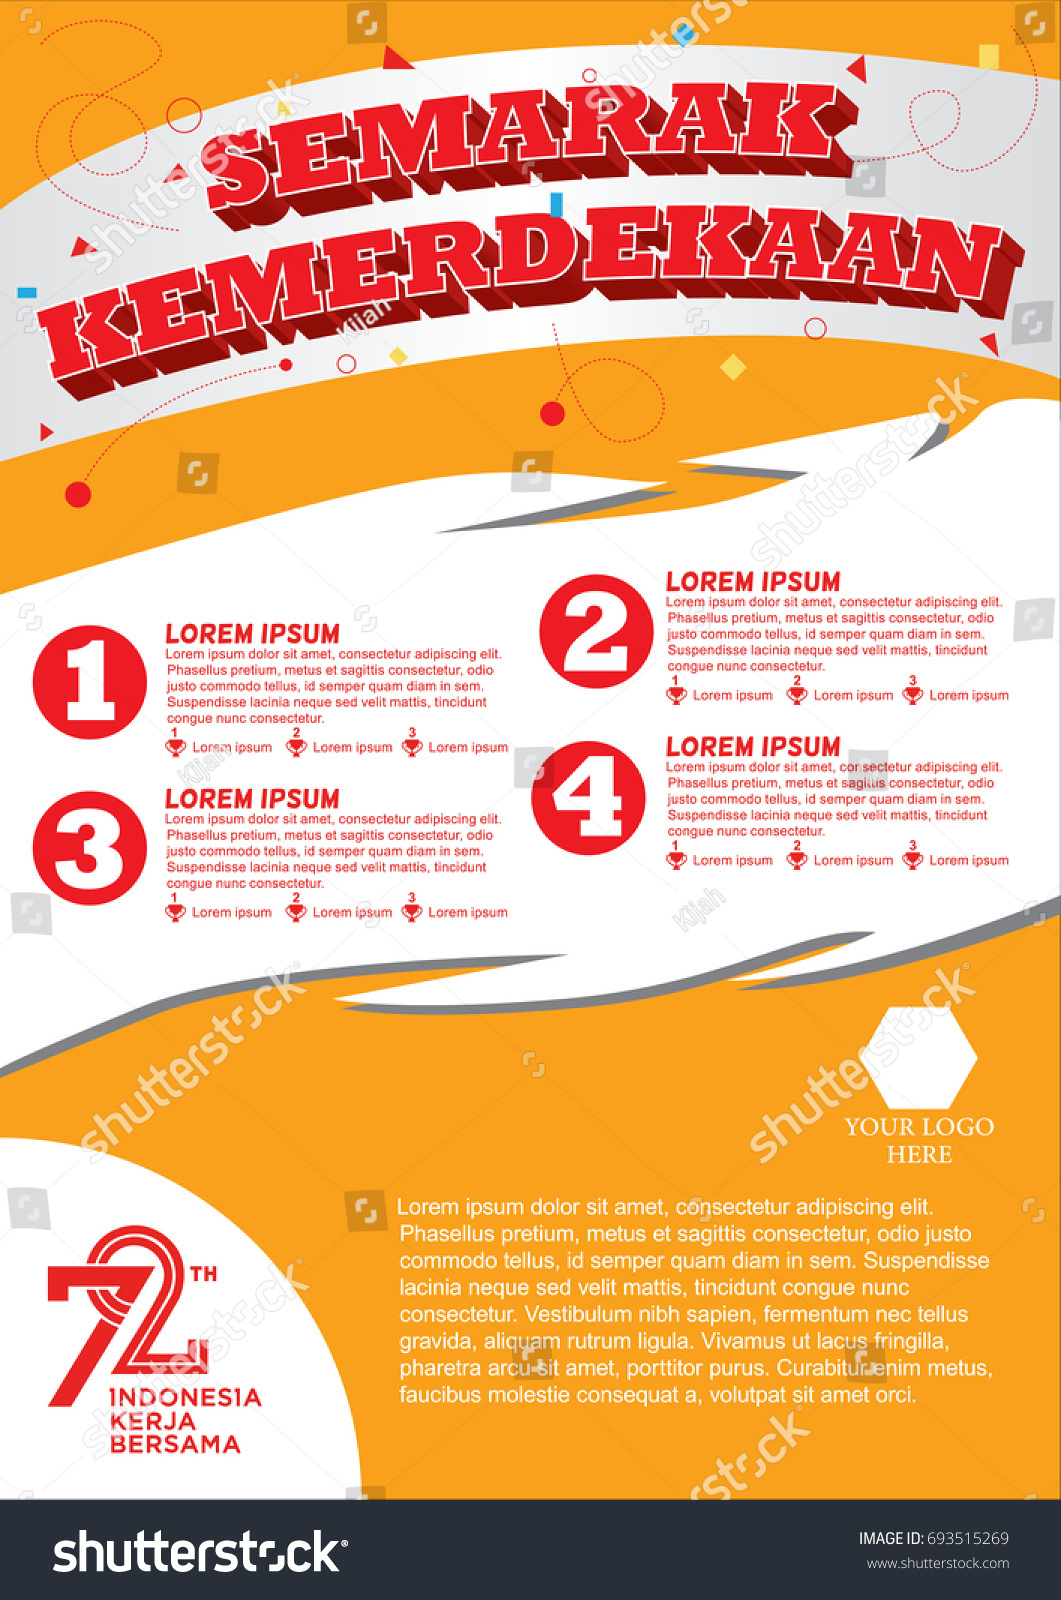 Poster Lomba 17 Agustus 2017 Indonesia Stock Image Download Now